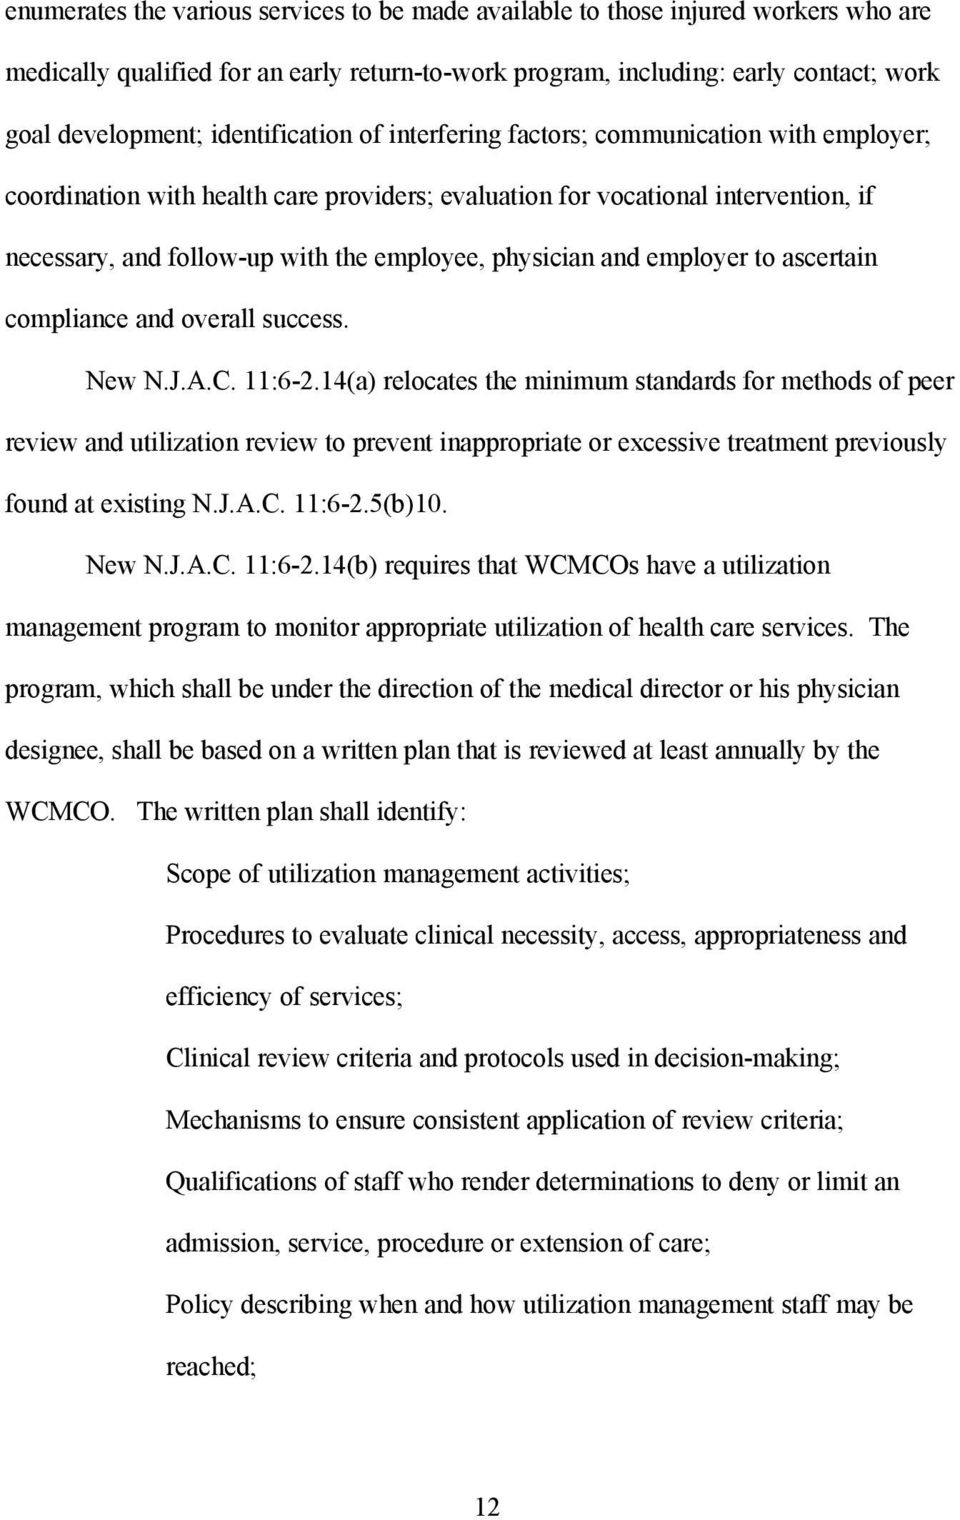 physician and employer to ascertain compliance and overall success. New N.J.A.C. 11:6-2.